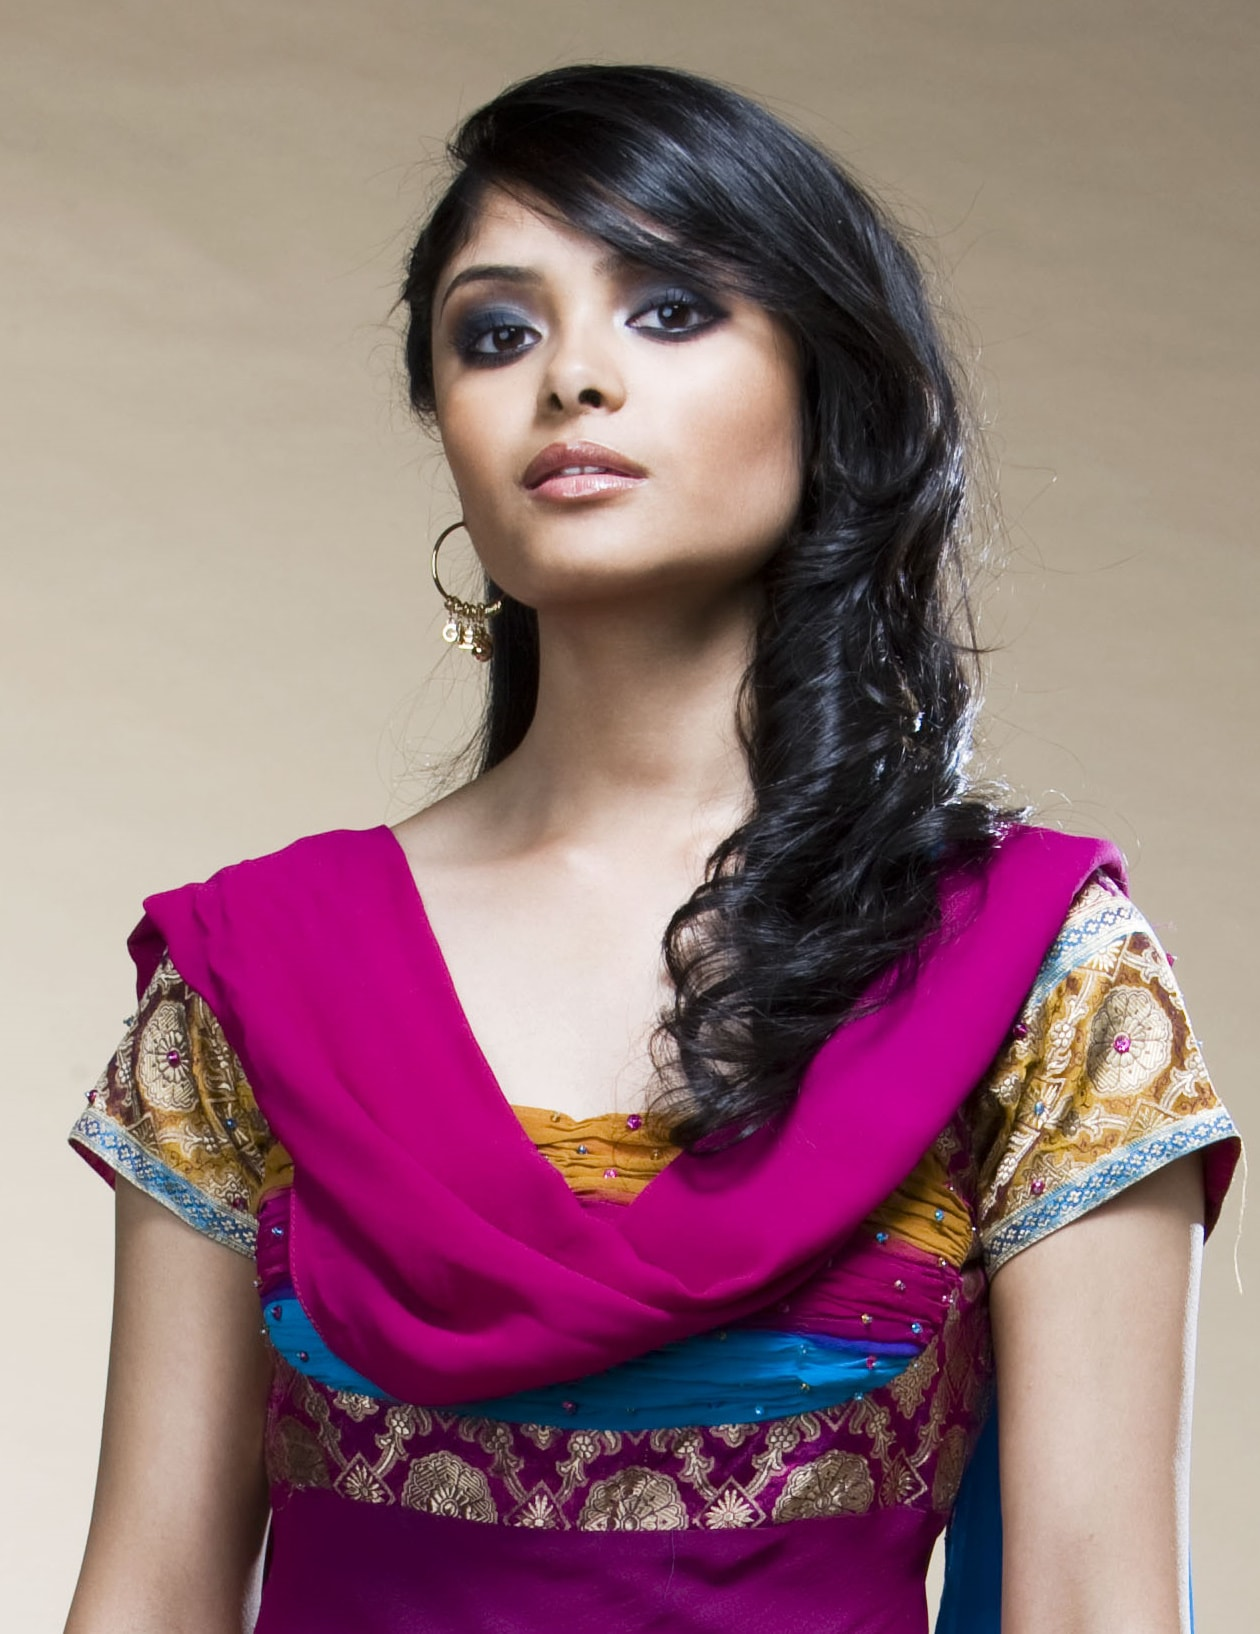 Afshan azad hd desktop wallpapers 7wallpapers afshan azad wallpaper afshan azad hd pictures thecheapjerseys Choice Image